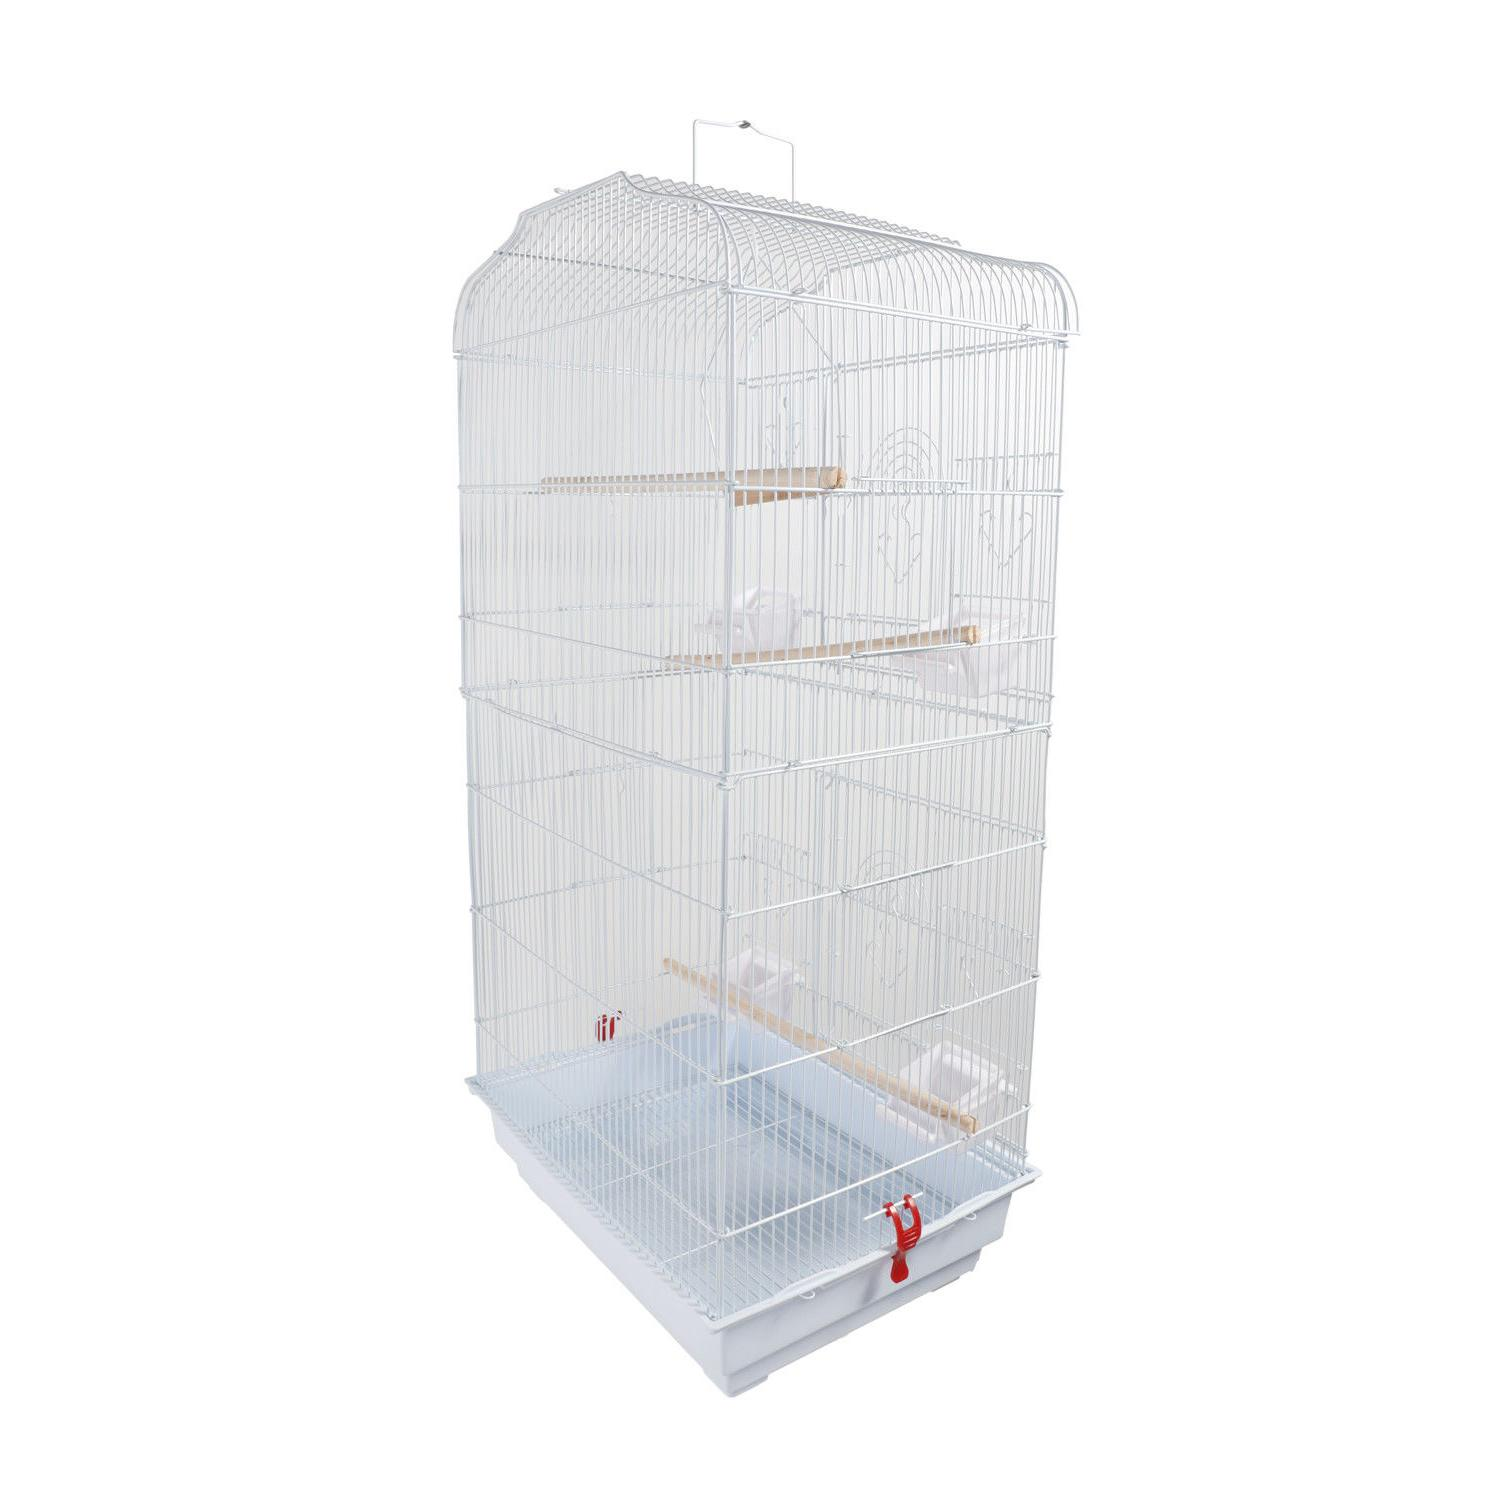 US Portable Cage w/ Food